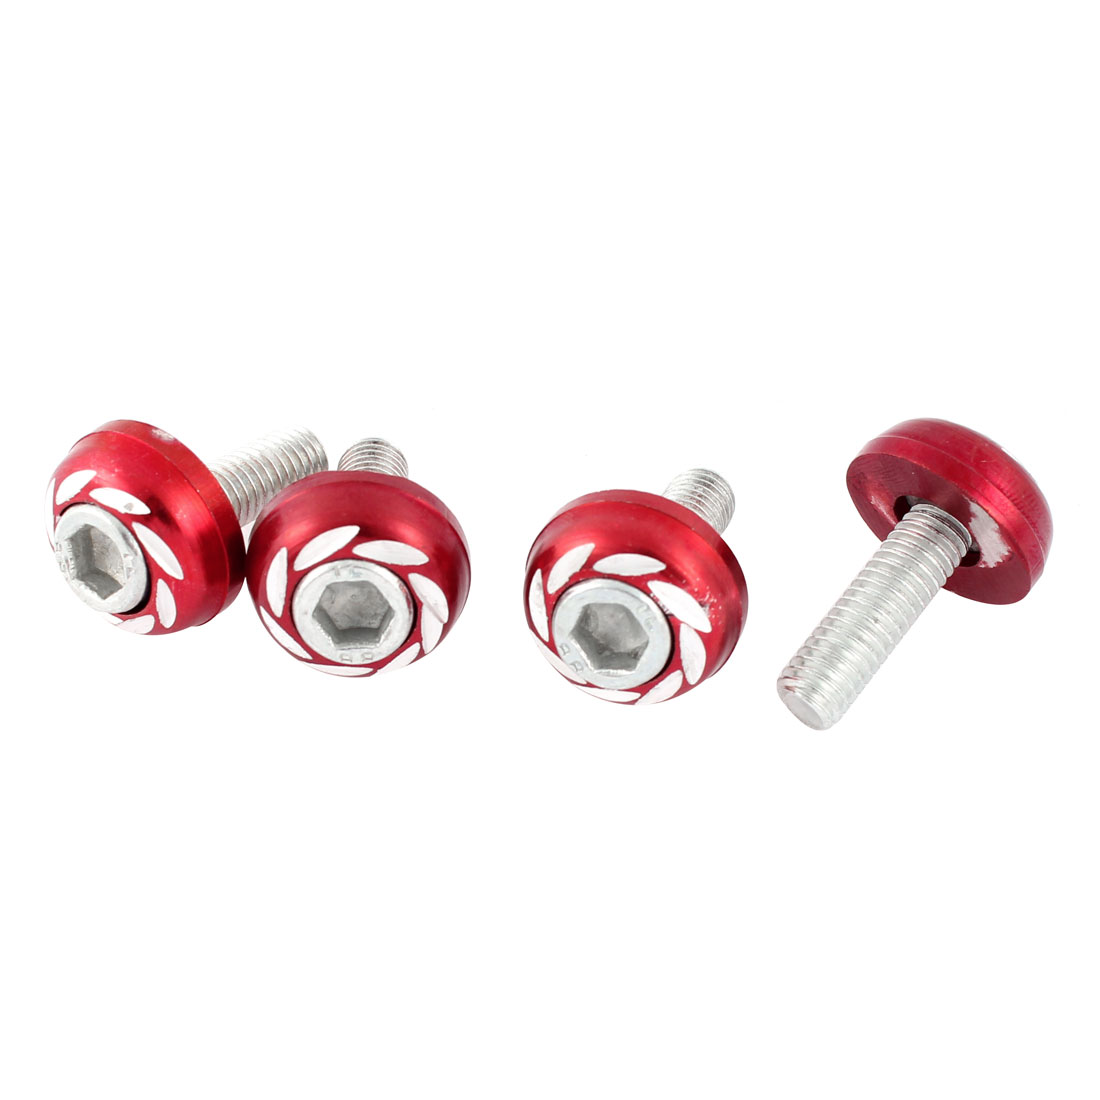 Motorcycle Car License Round Head Plate Screw Bolt Decoration Red 6mm 4 Pcs